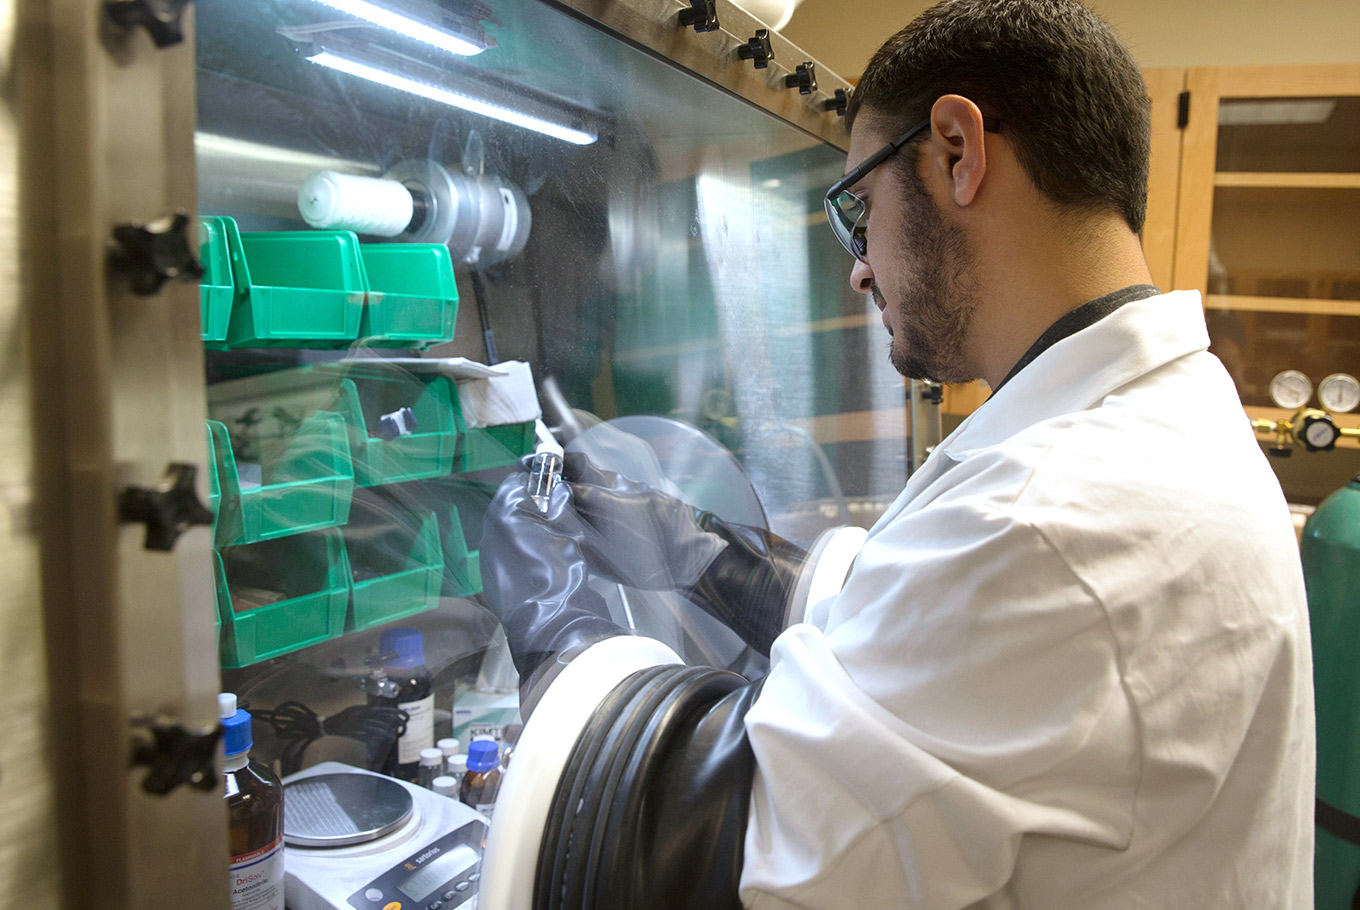 Male student works in a chemistry lab